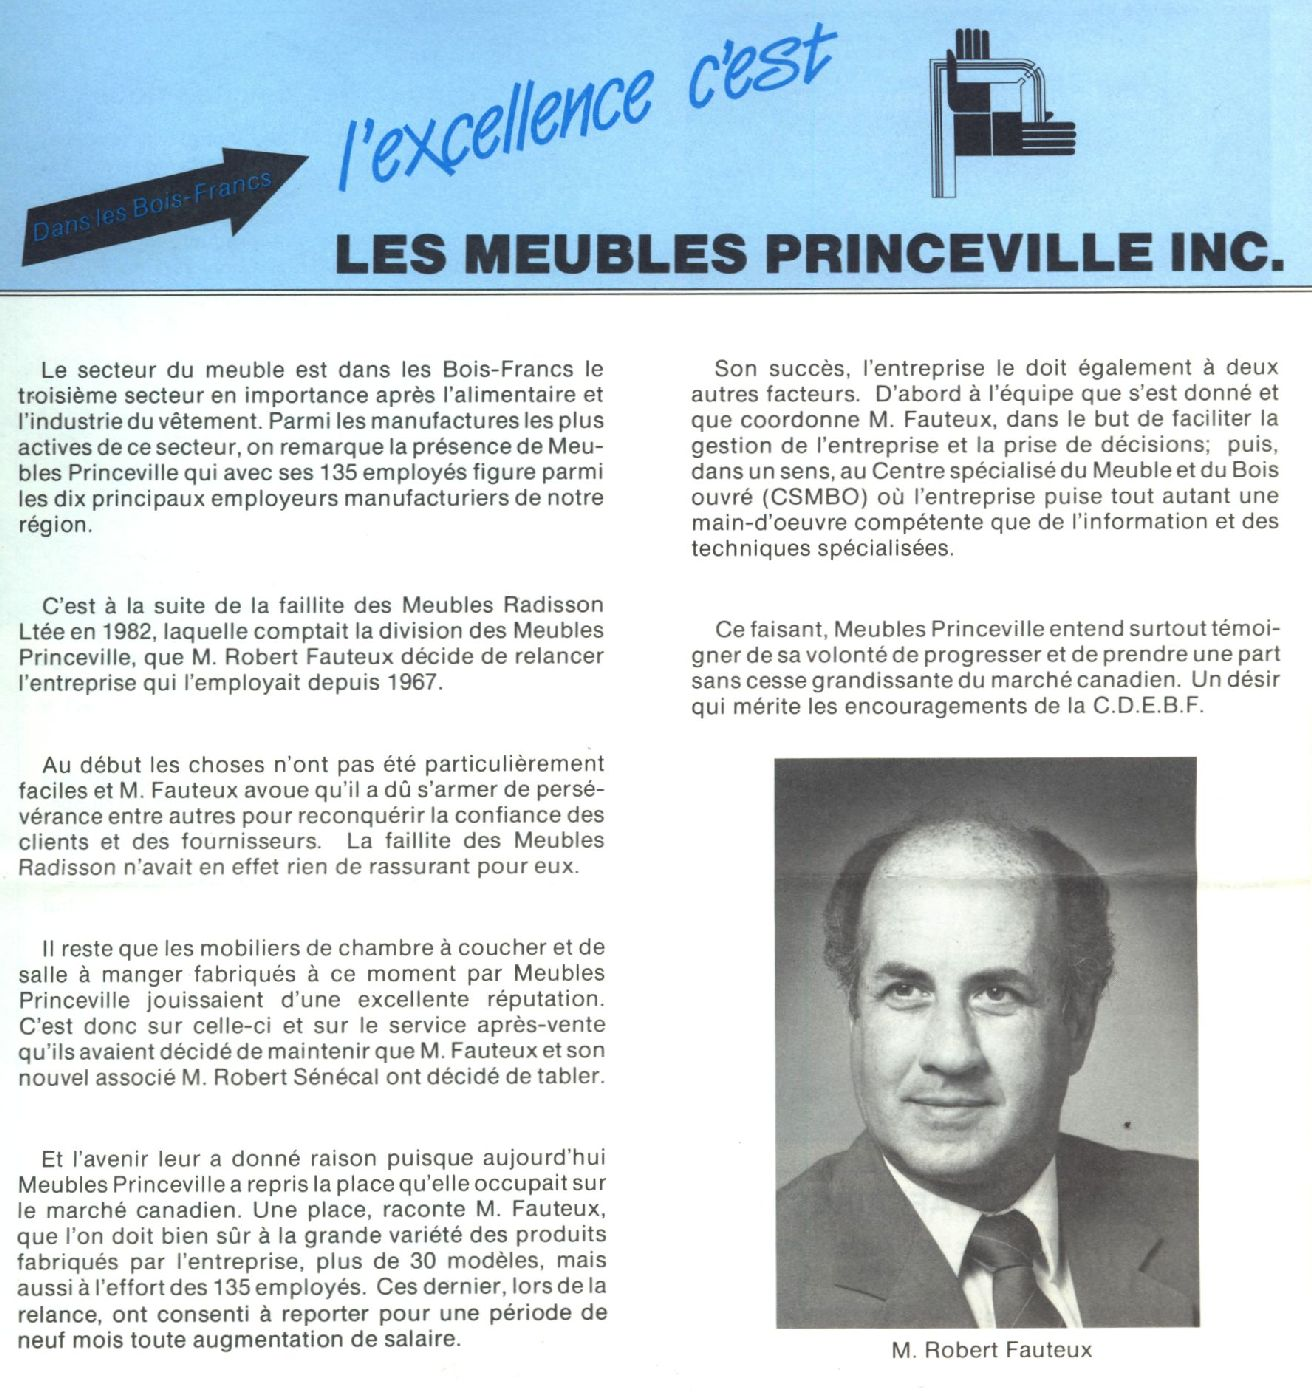 Commerces et industries princeville furniture for Le meuble villageois inc